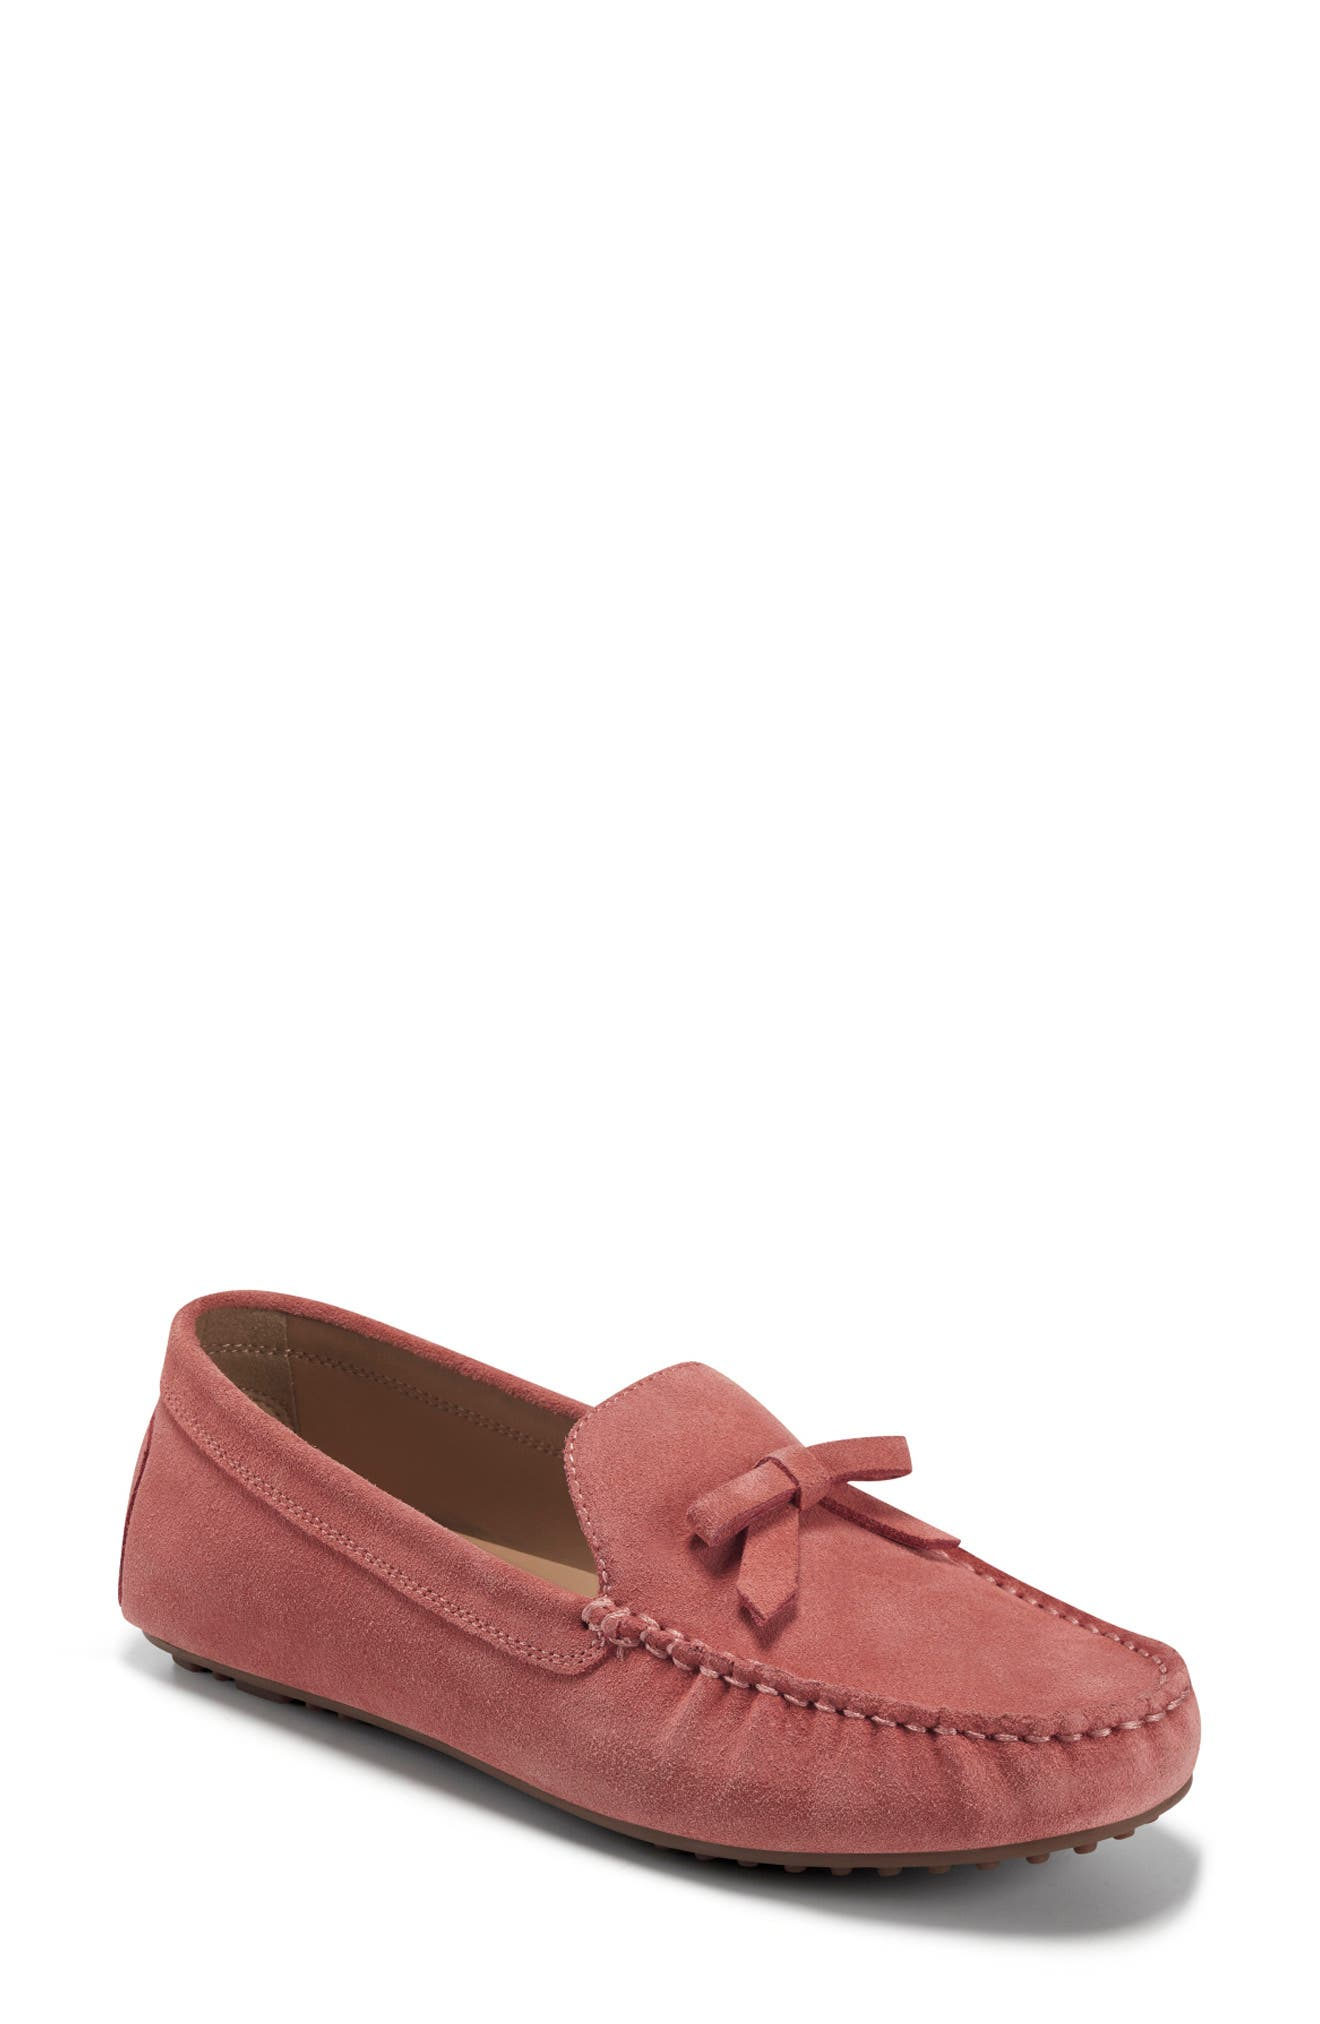 Bowery Loafer